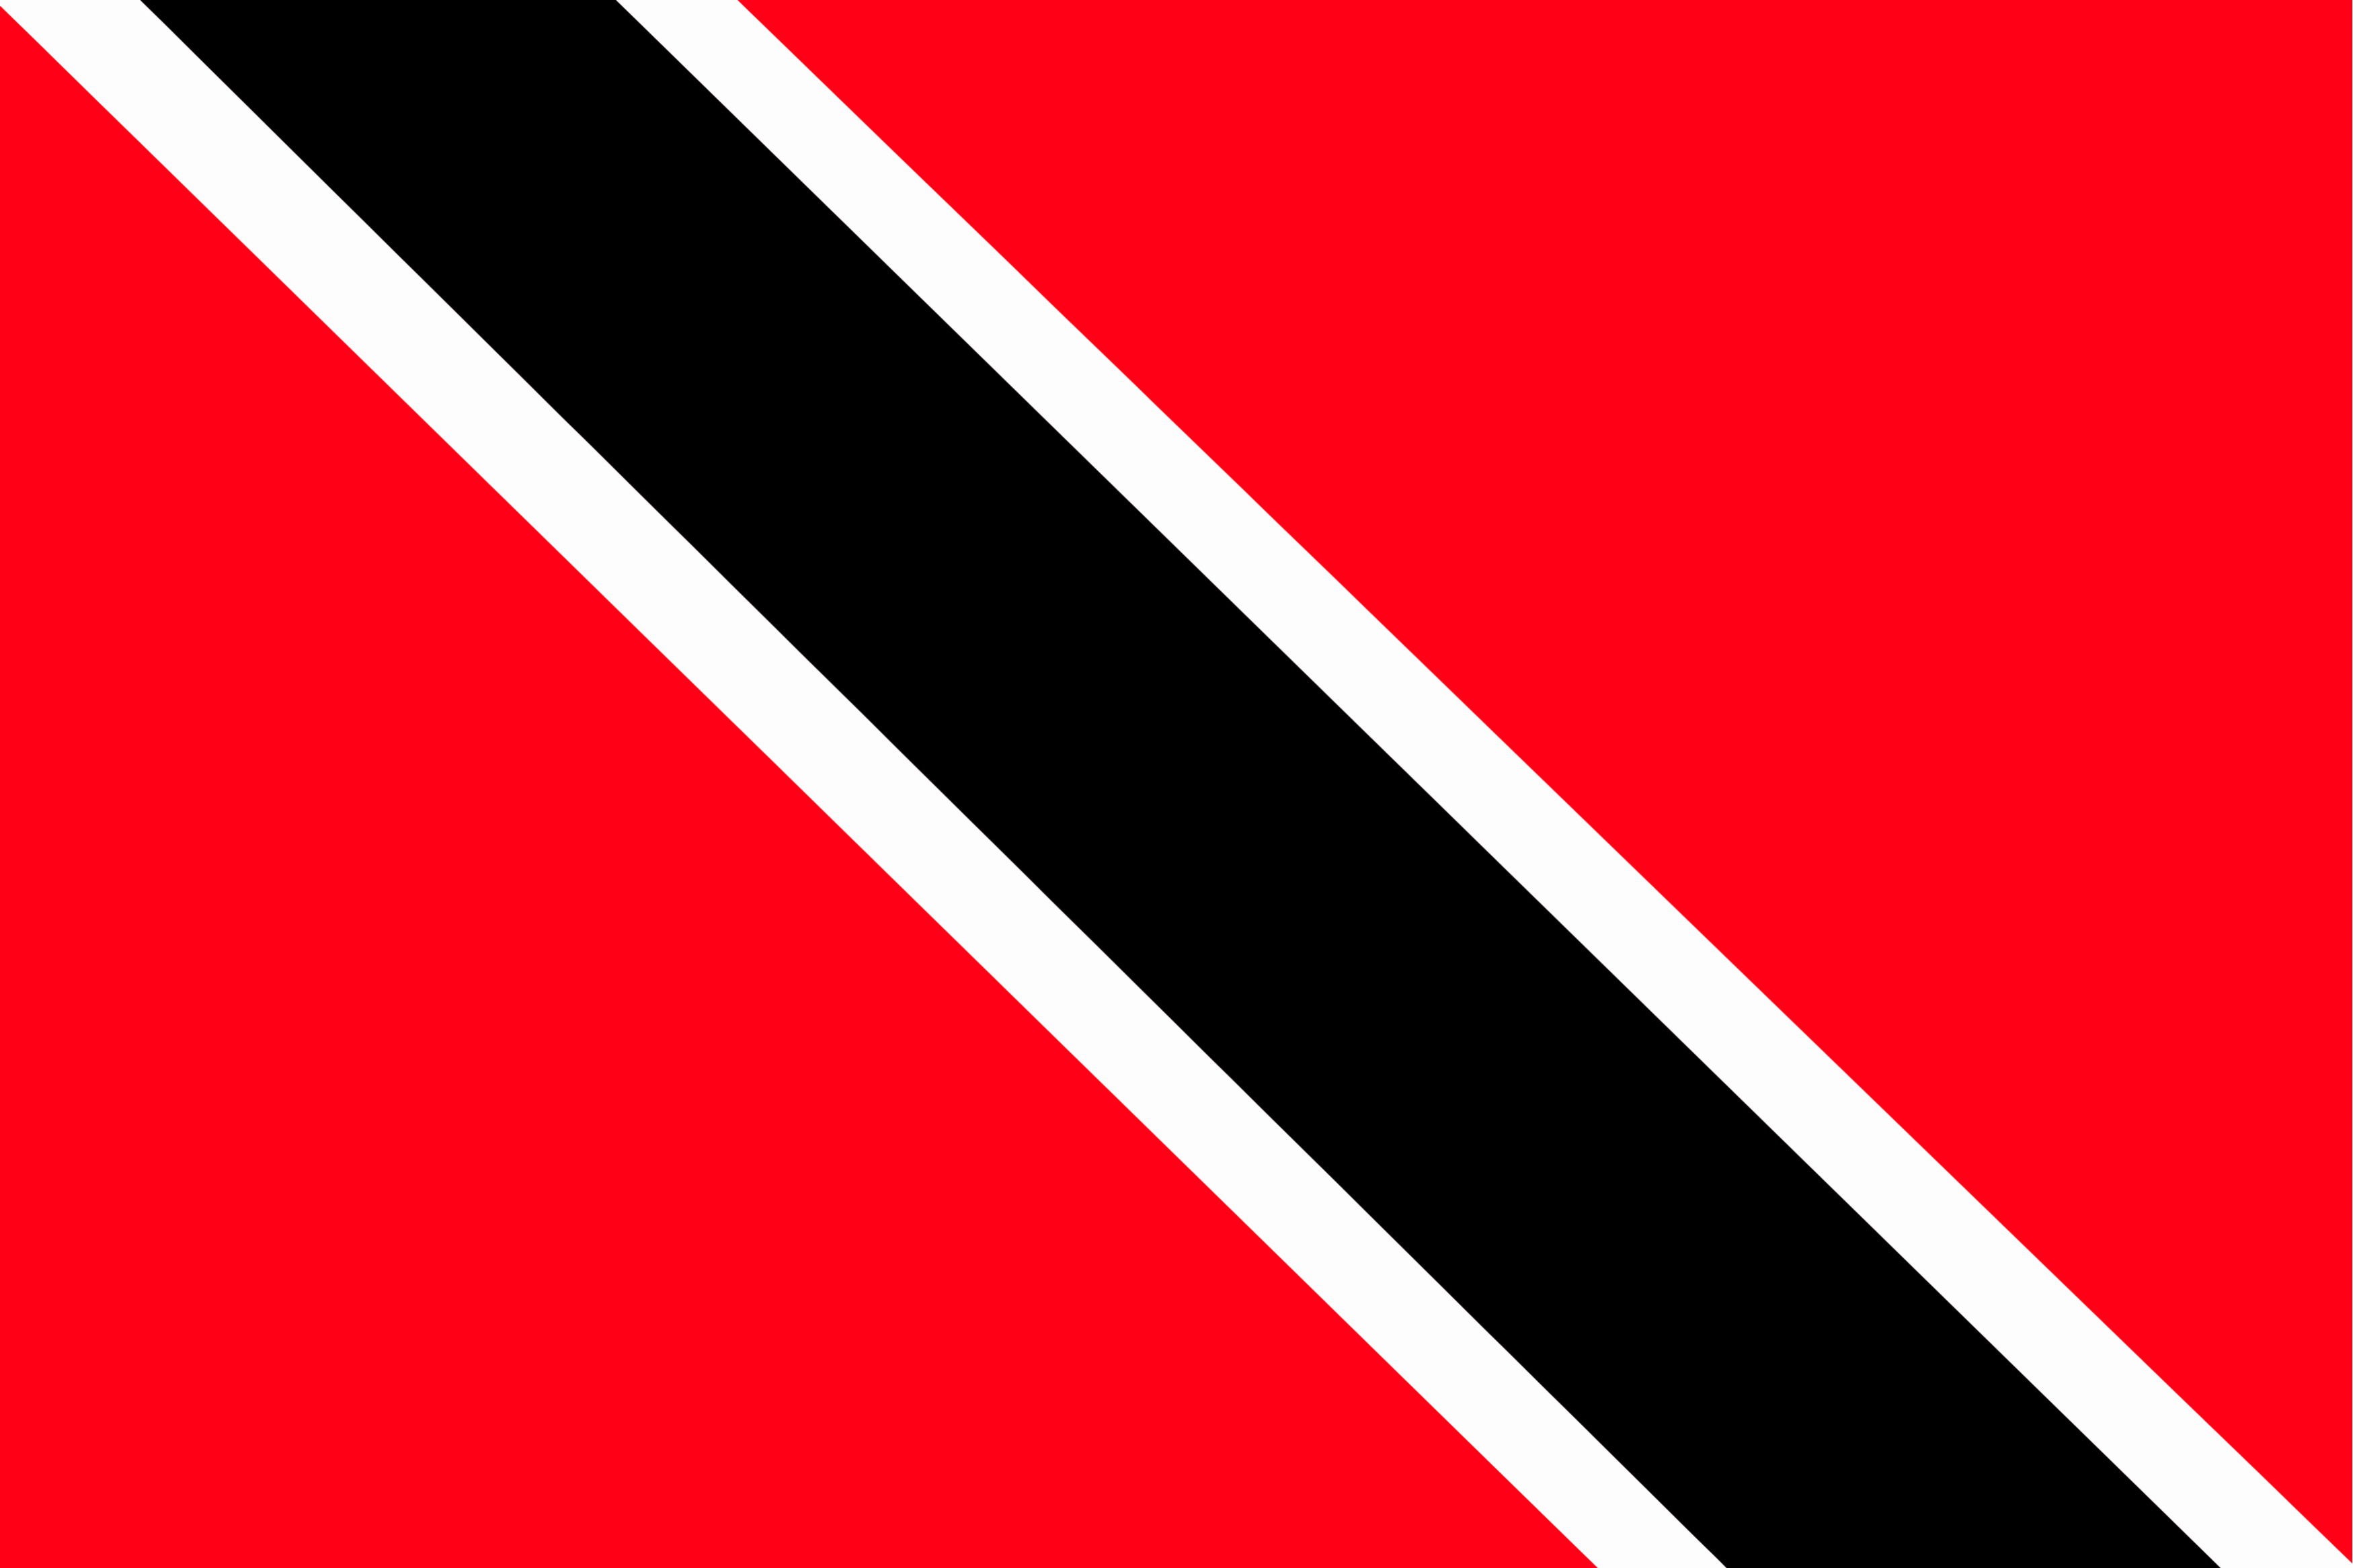 The flag of Trinidad and Tobago hanging in the sky.